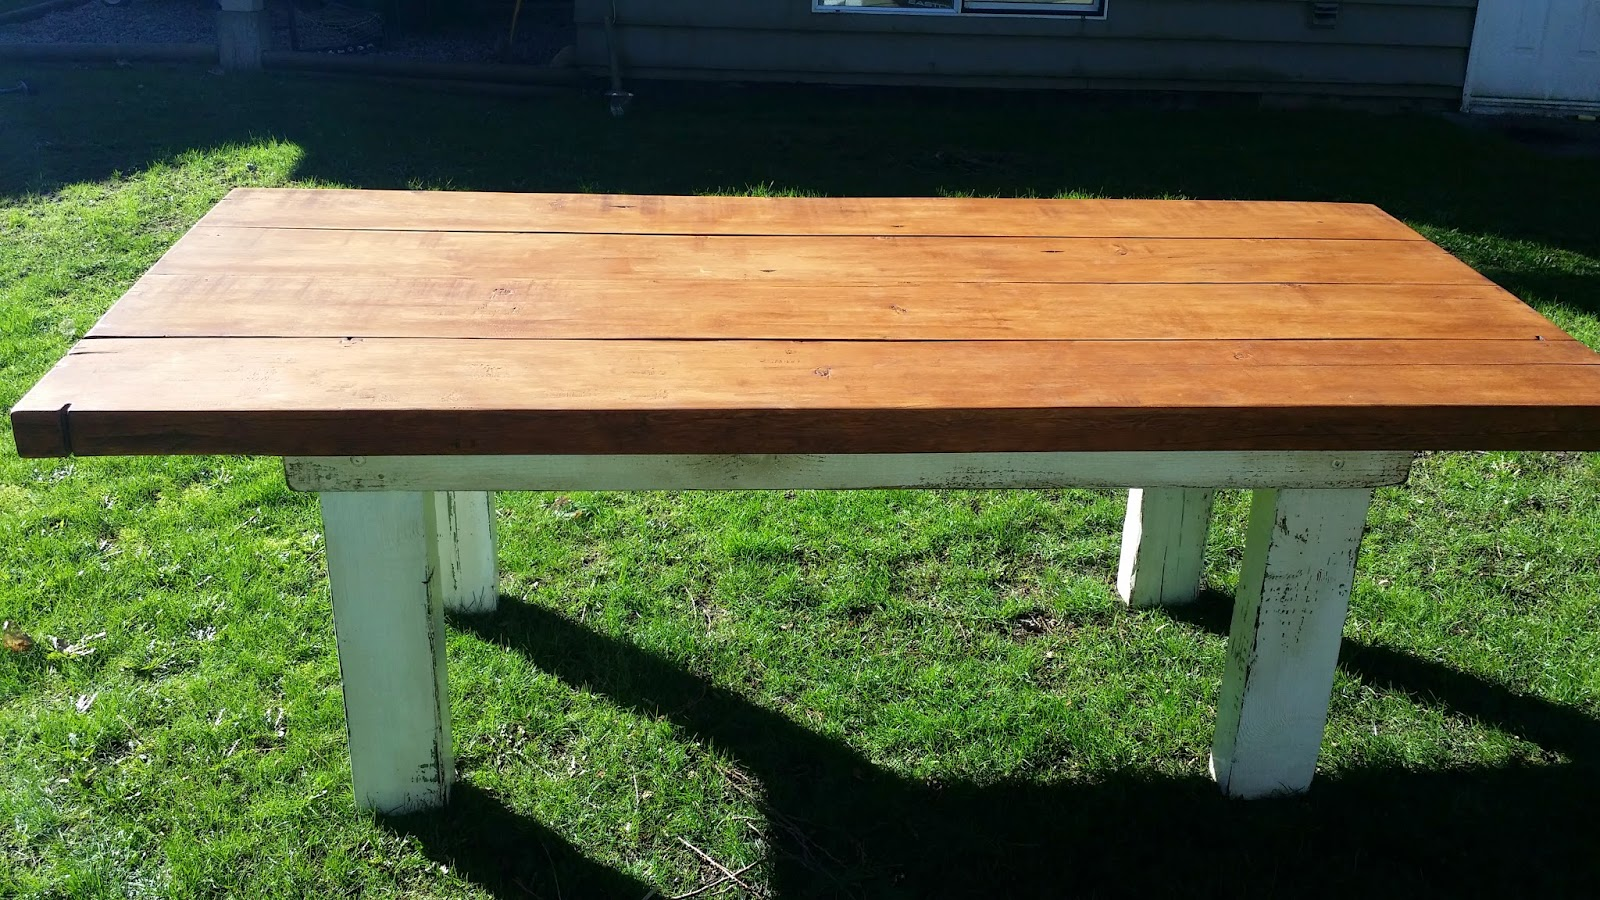 A Truly Incredible 7u0027 Harvest Table Made From A Single Locally Sourced,  Reclaimed Douglas Fir Post! The Combination Of Clear Grain Sections And  Old, ...